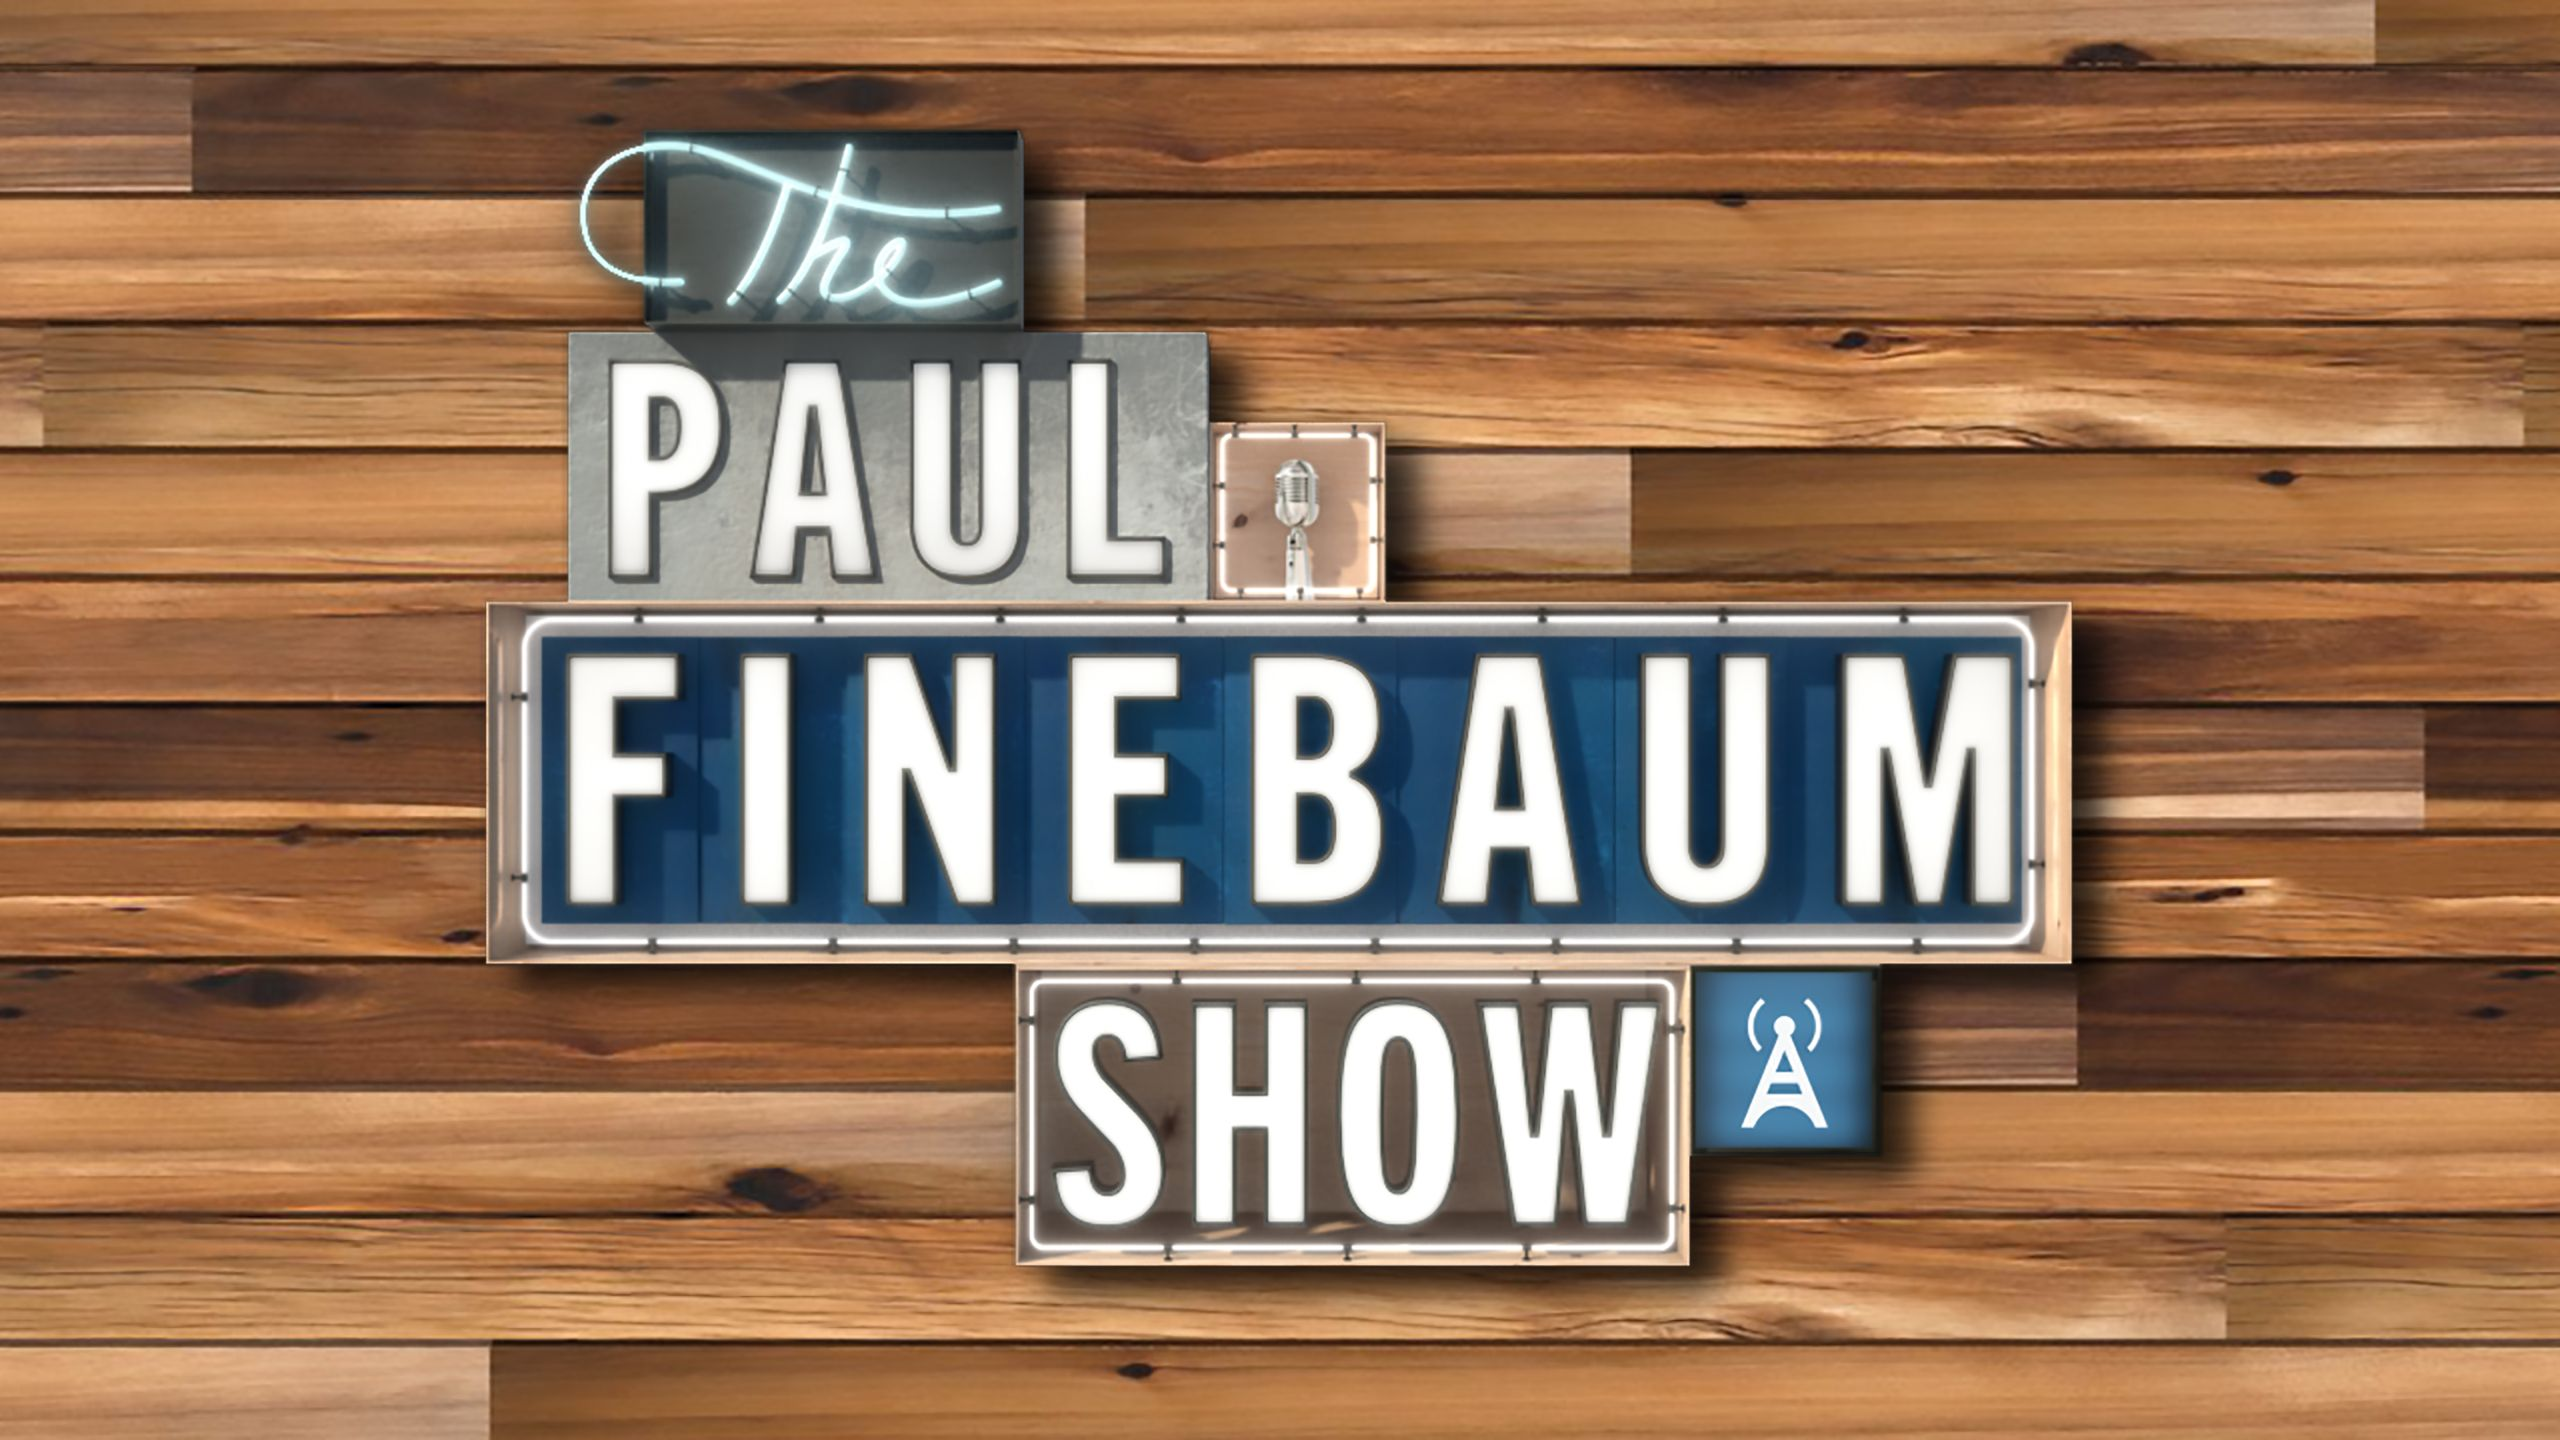 Tue, 2/20 - The Paul Finebaum Show